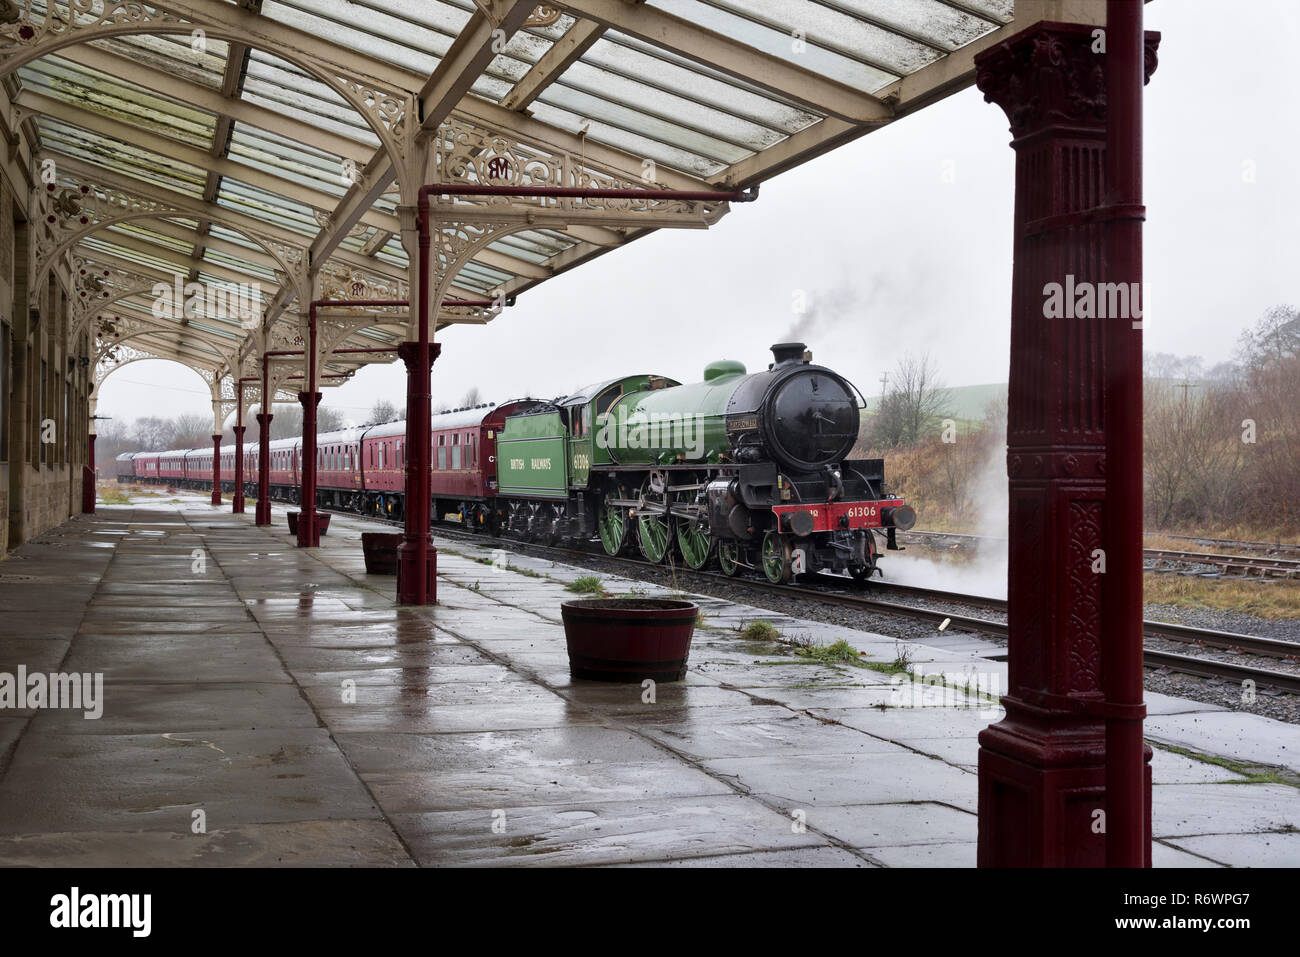 B1 class steam locomotive 'Mayflower' (built 1948) stops at the ornate Hellifield Station, North Yorkshire, while on a test run. - Stock Image